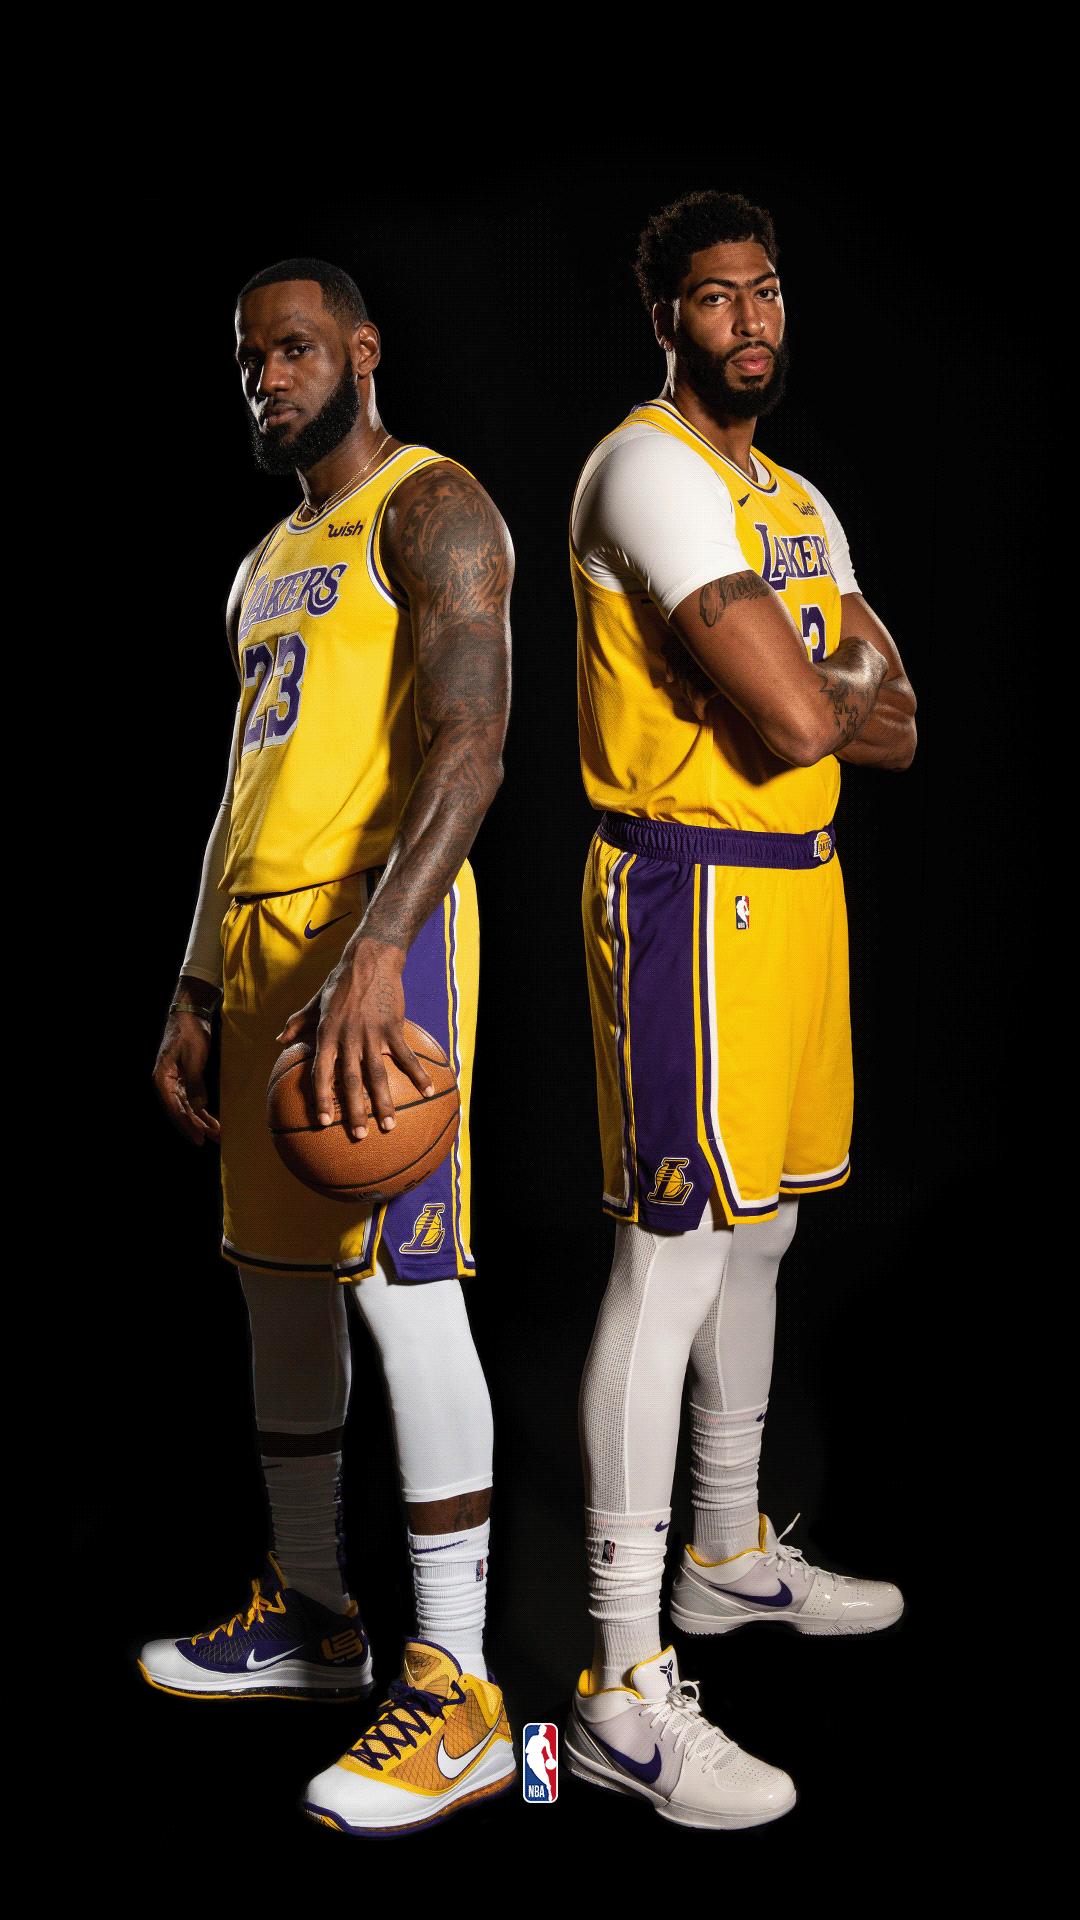 NBA wallpapers on Behance in 2020 Nba pictures, Nba